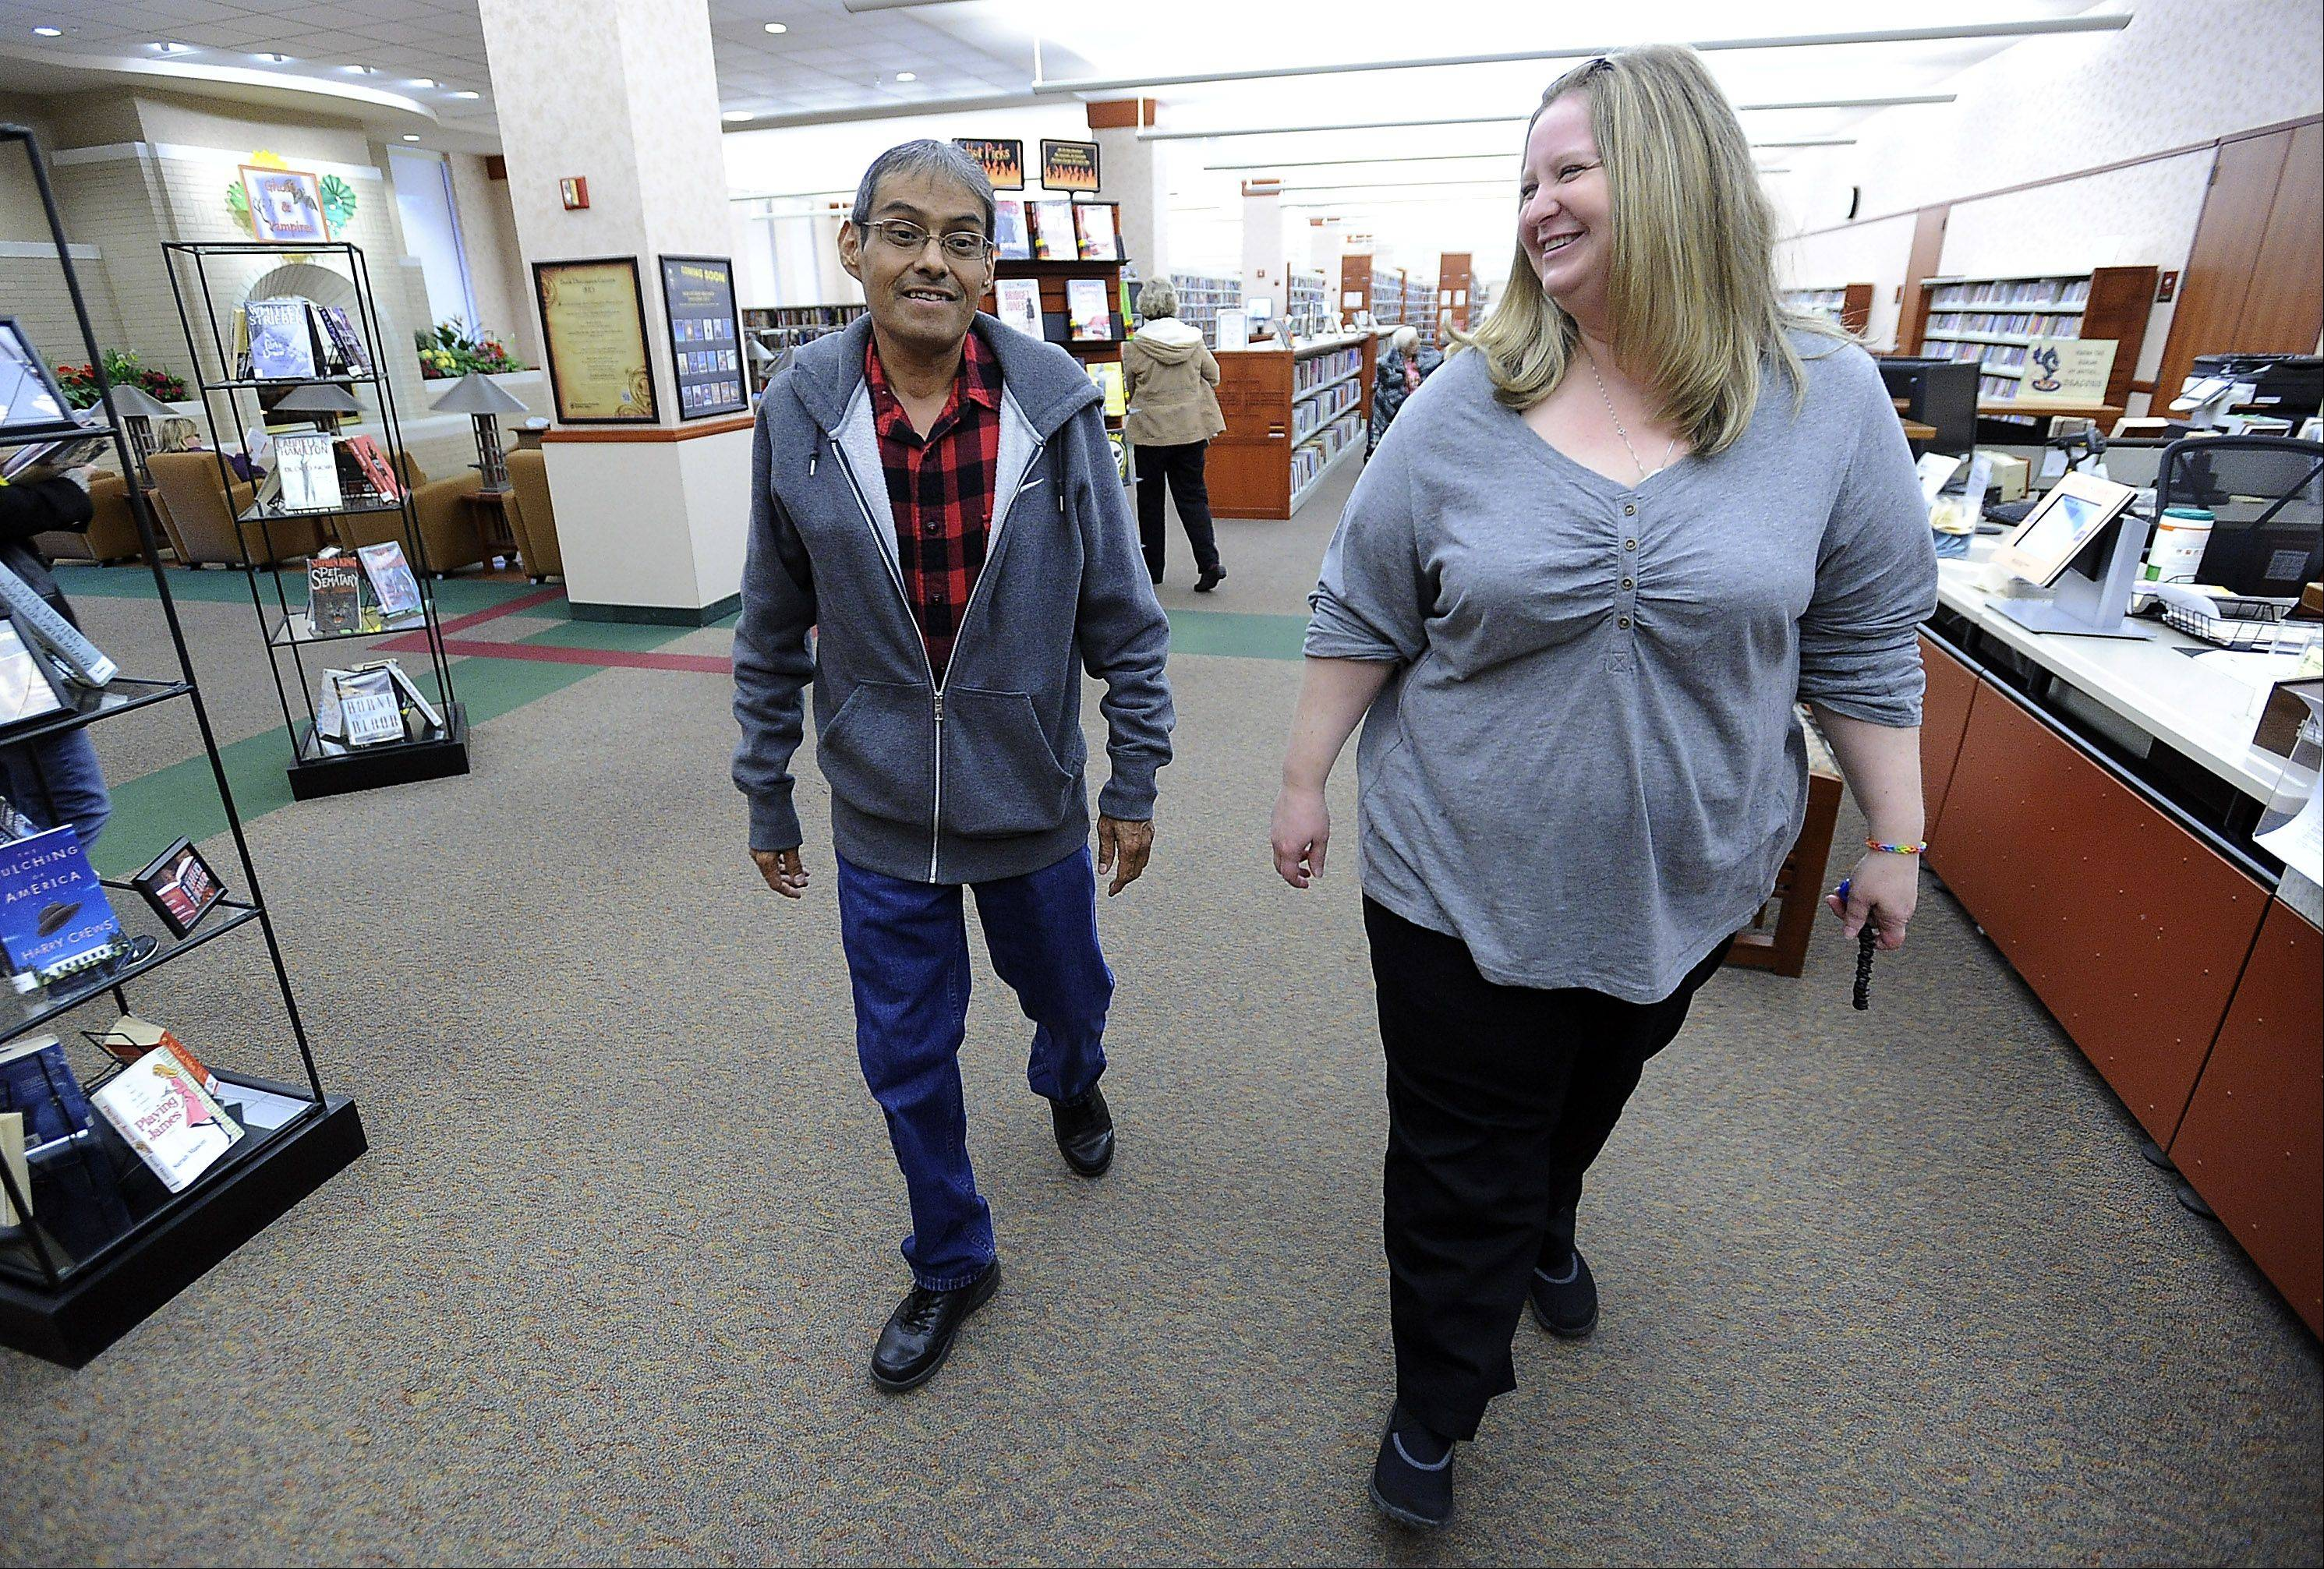 Cindy Barger, serials supervisor at the Schaumburg Township District Library, talks to her friend and co-worker Freddie Martinez about his recent liver transplant and his becoming the 1,500th liver recipient at Northwestern Memorial Hospital. Barger helped Martinez through his difficult times both at home and in the hospital.